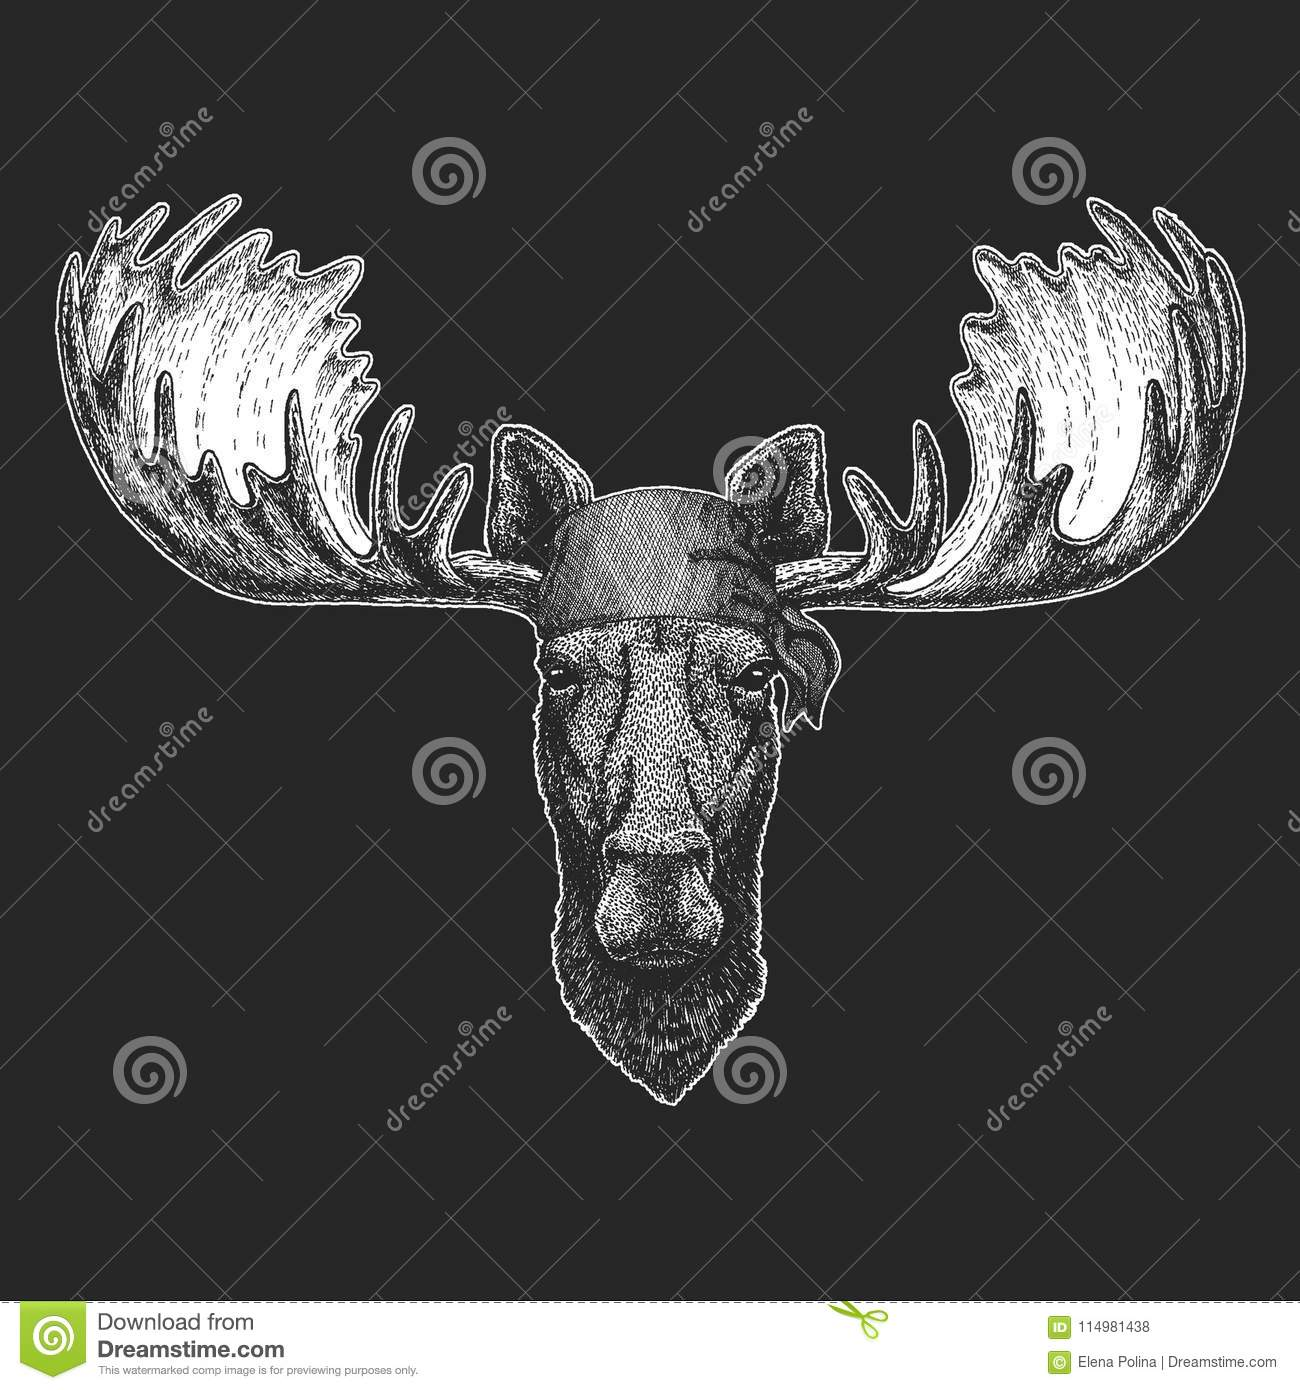 Moose Elk Cool Pirate Seaman Seawolf Sailor Biker